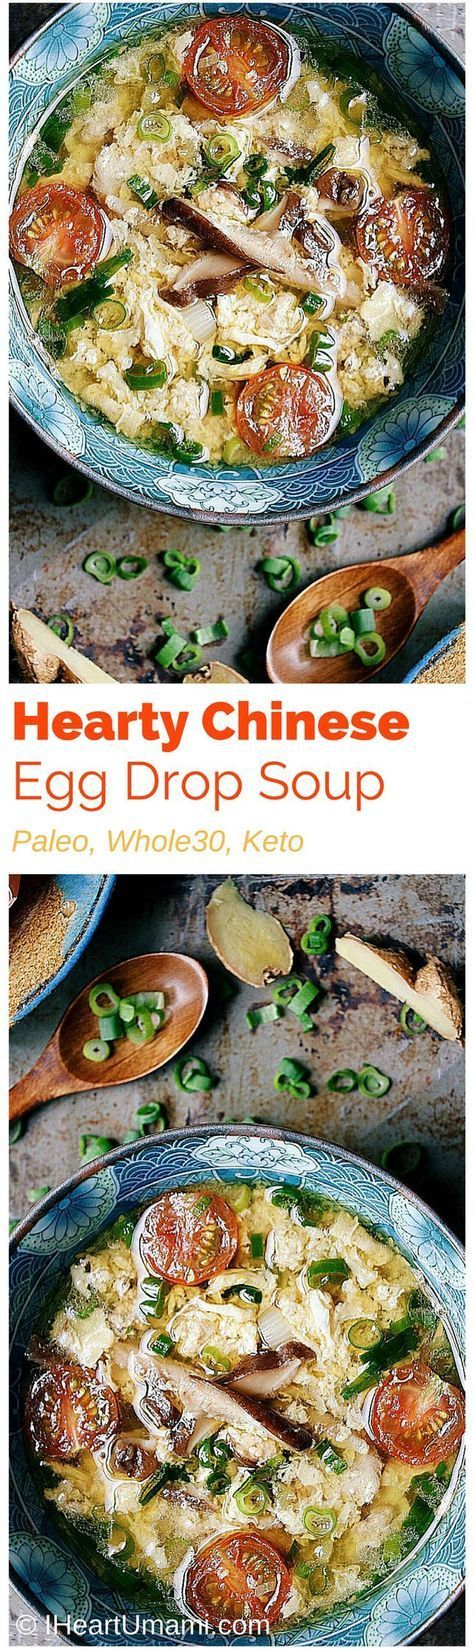 Hearty Chinese Egg Drop Soup! Make the most soft and fluffy eggs with savory mushrooms, citrus tomatoes, and juicy ground chicken. A savory broth to keep your full and satisfied. Paleo, Whole30, Keto friendly.